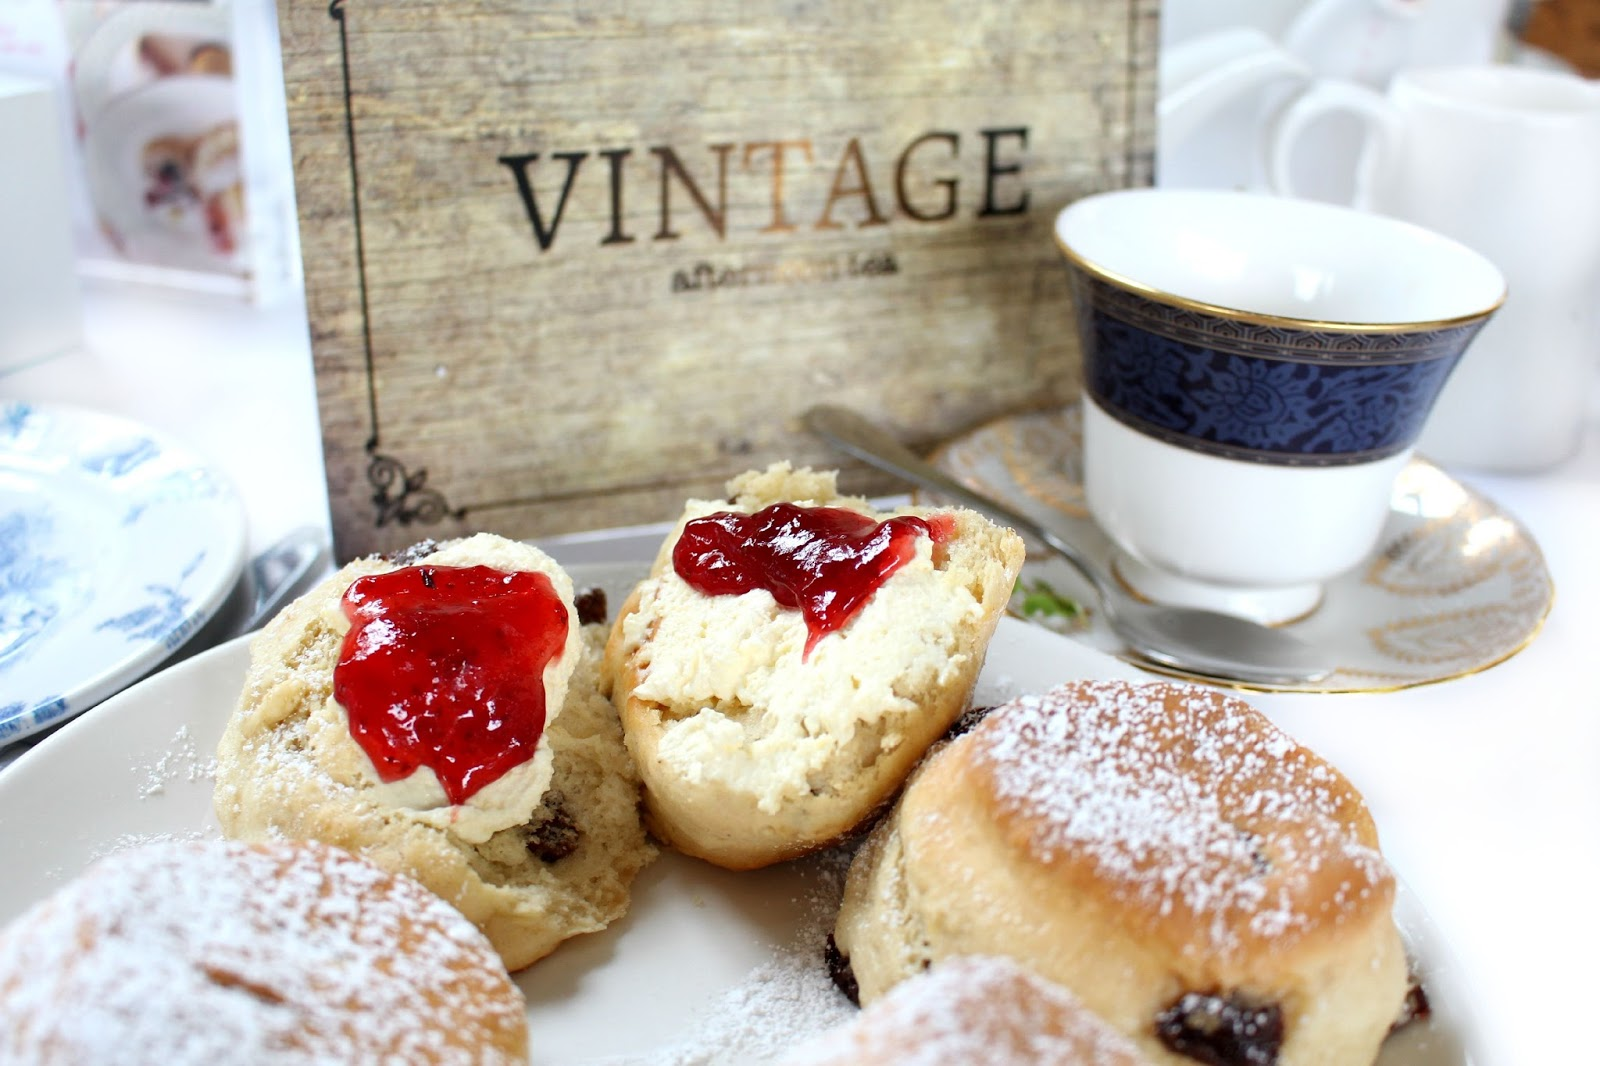 Celtic Manor Vintage Afternoon Tea